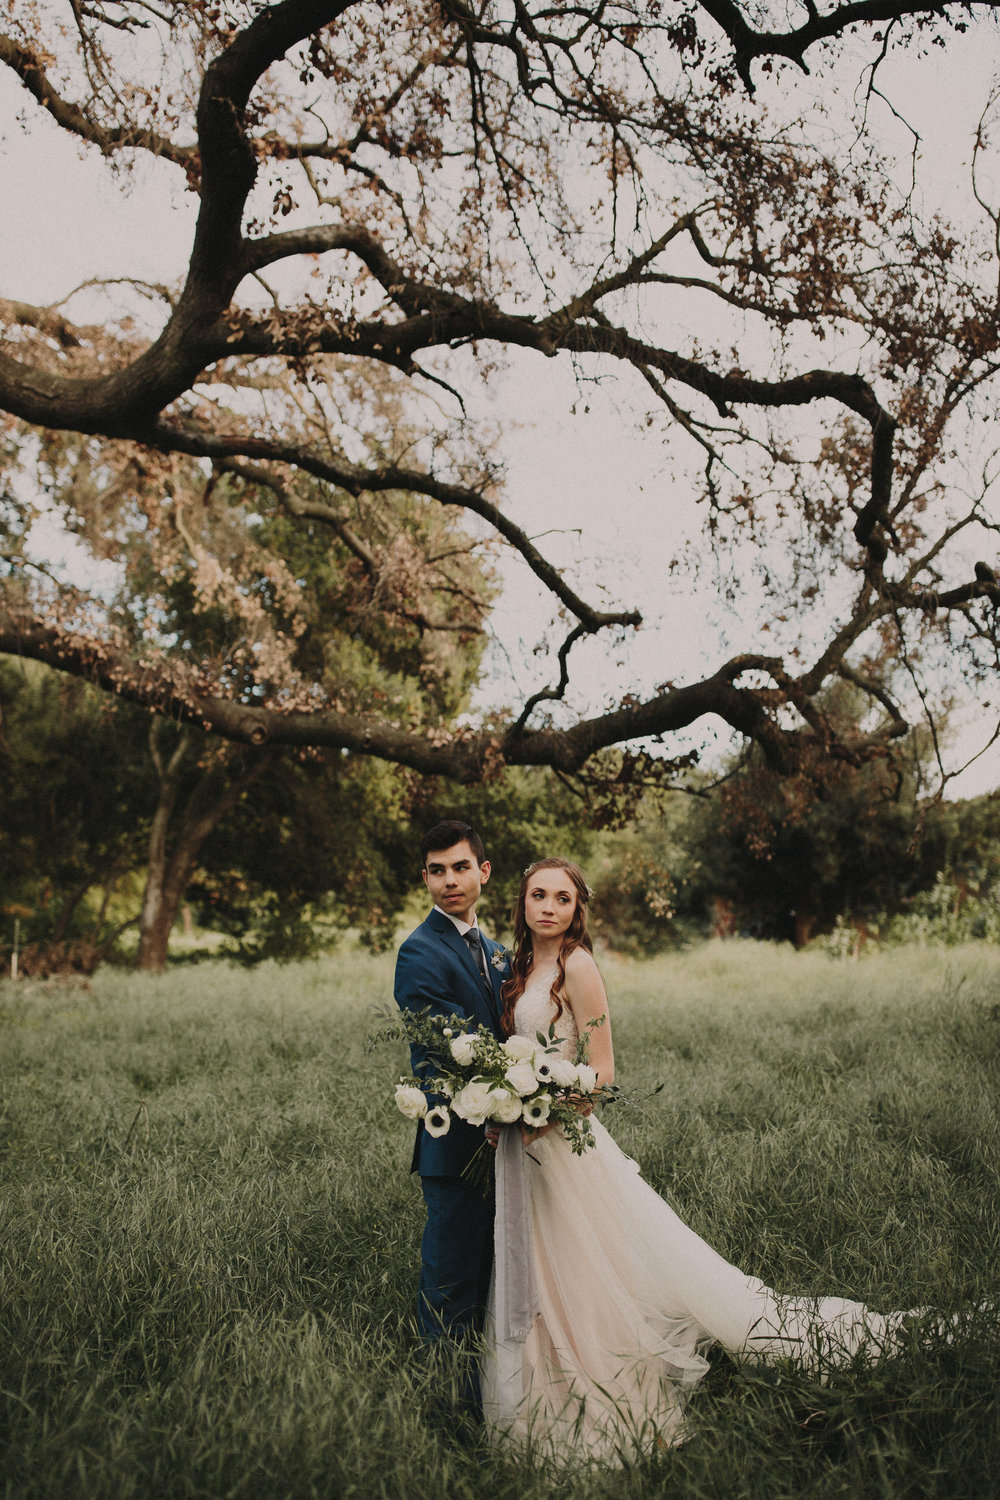 Jeanne + Cody - Terre Madre Gardens Escondido Wedding-59.jpg